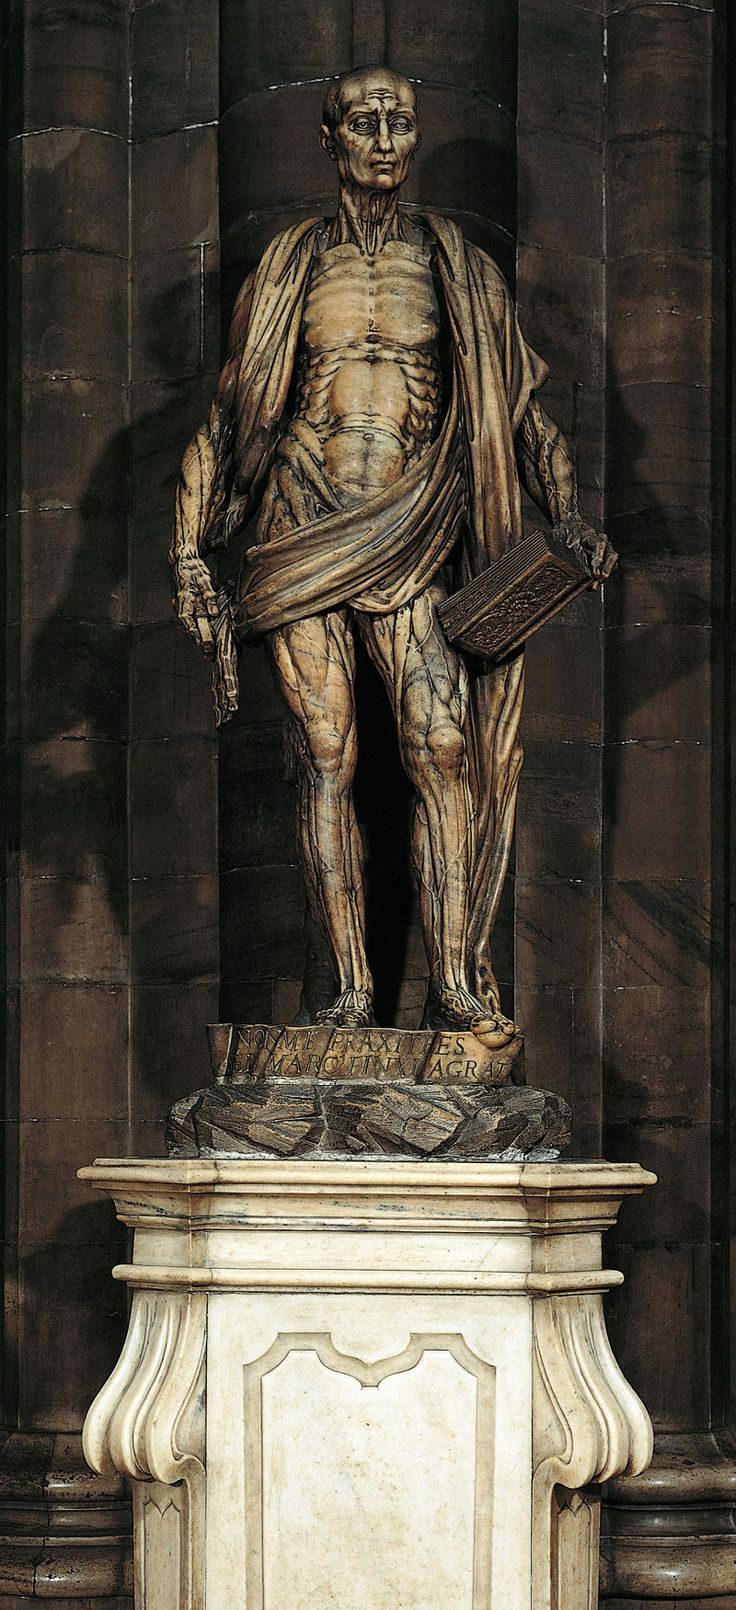 The Statue of St. Bartholomew in the #Milan #Cathedral ...